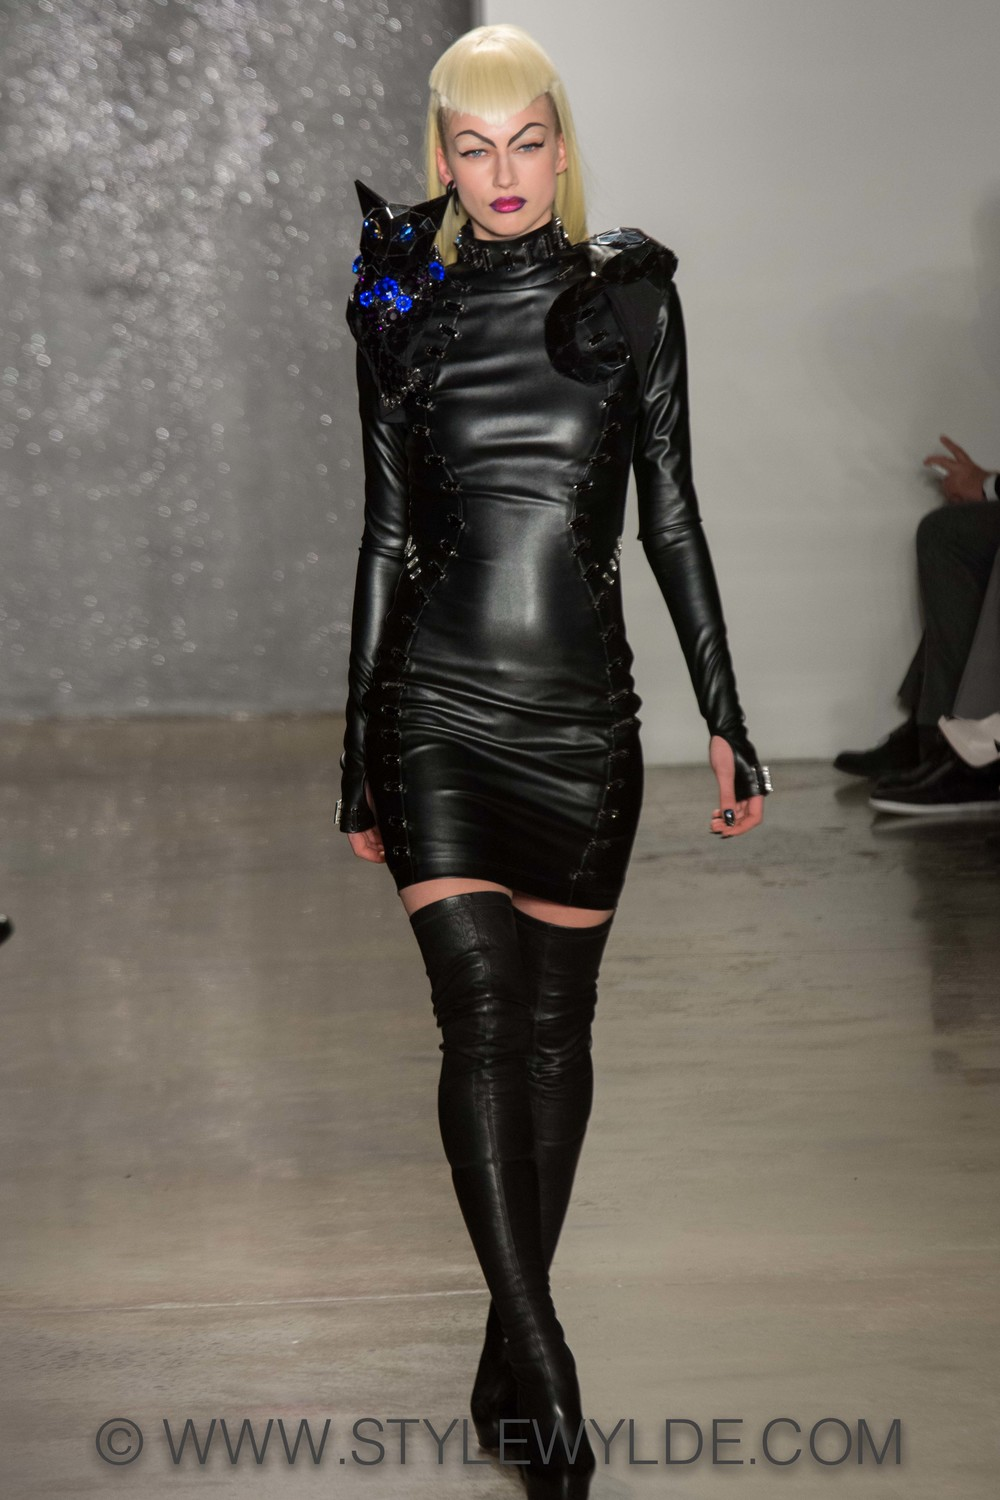 Stylewylde_Blonds_FW2014_FOH_SJW 1 of 1-10.jpg